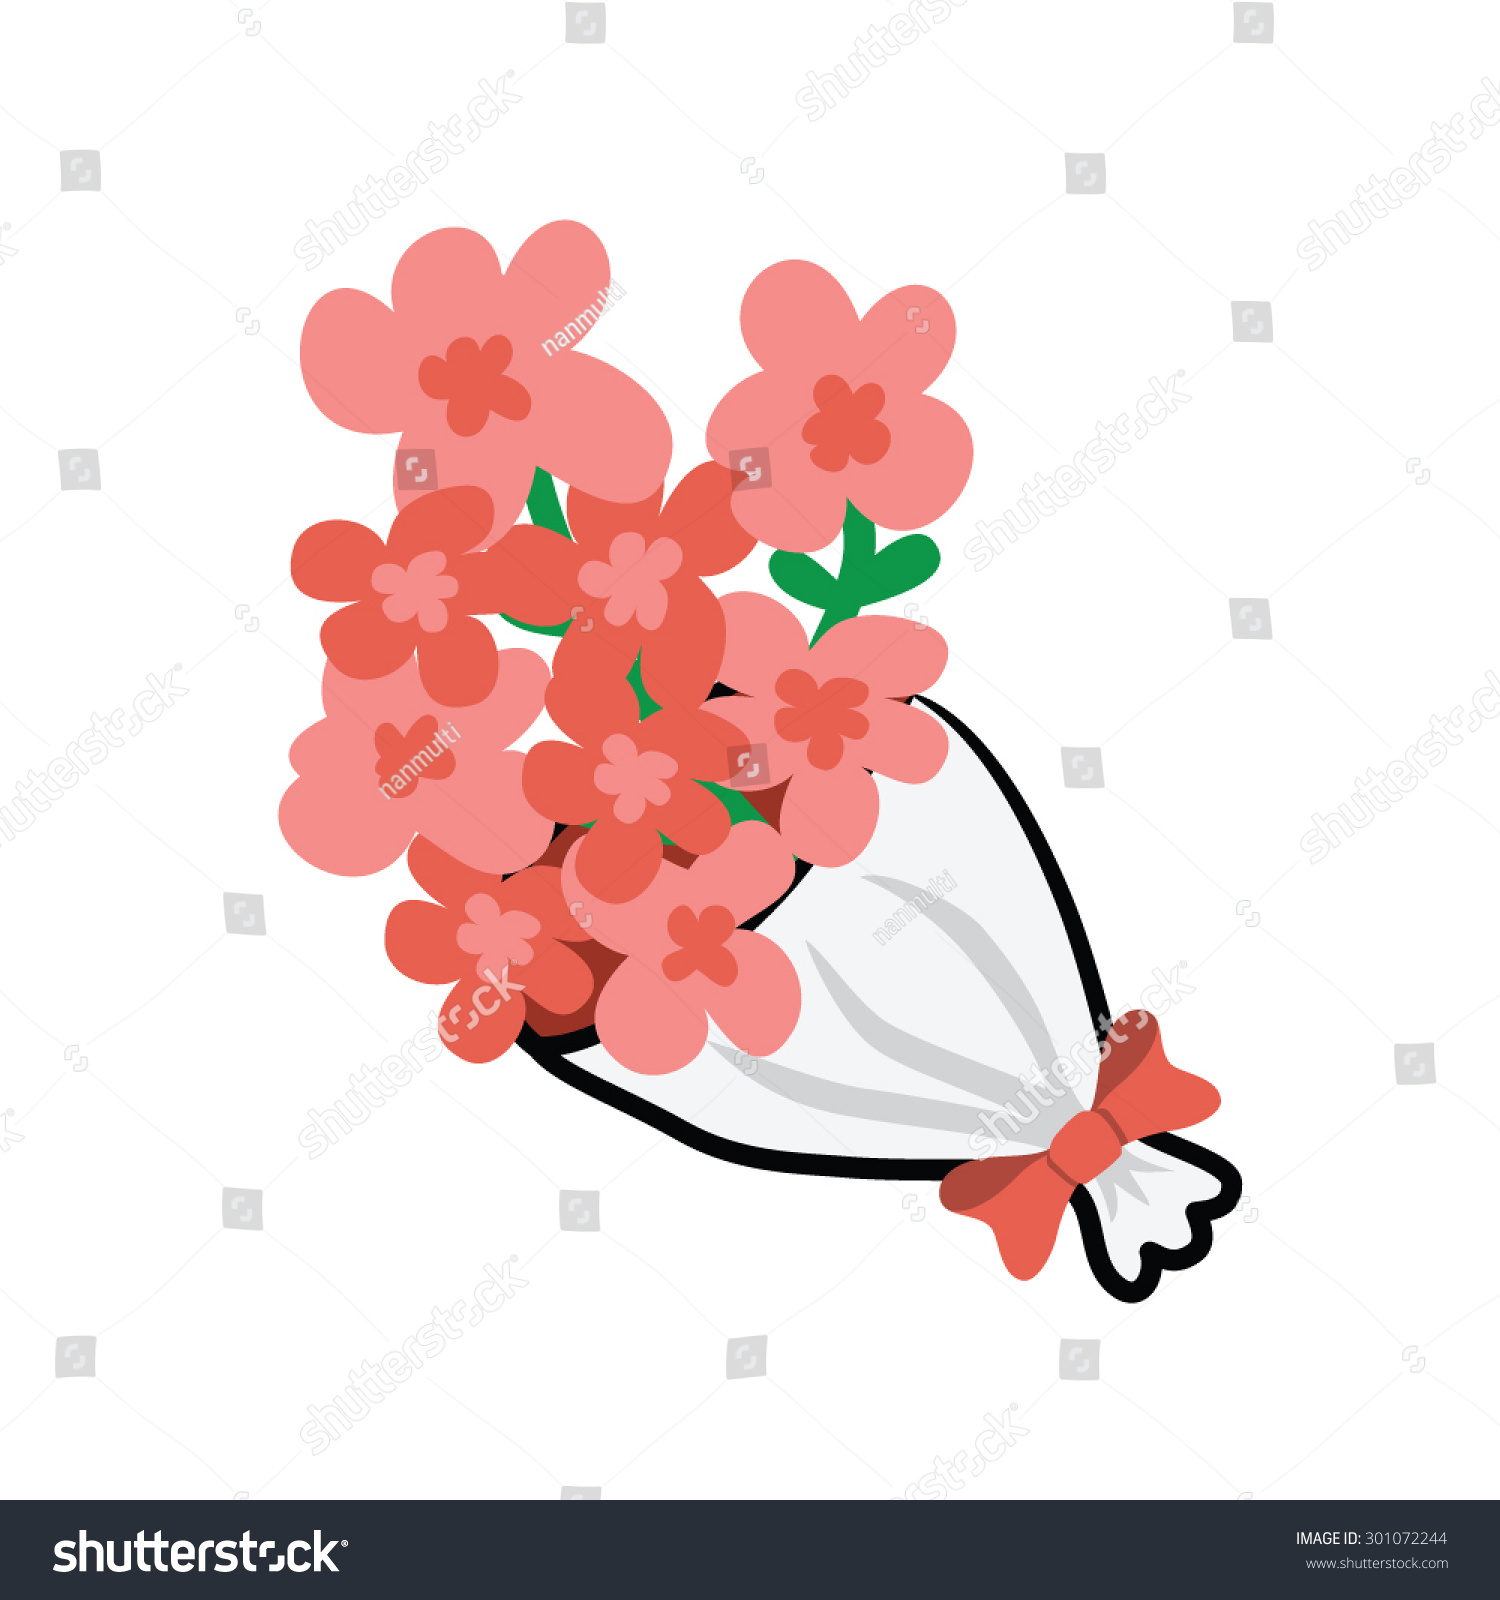 Flower Bouquet Vector Stock Vector Royalty Free 301072244